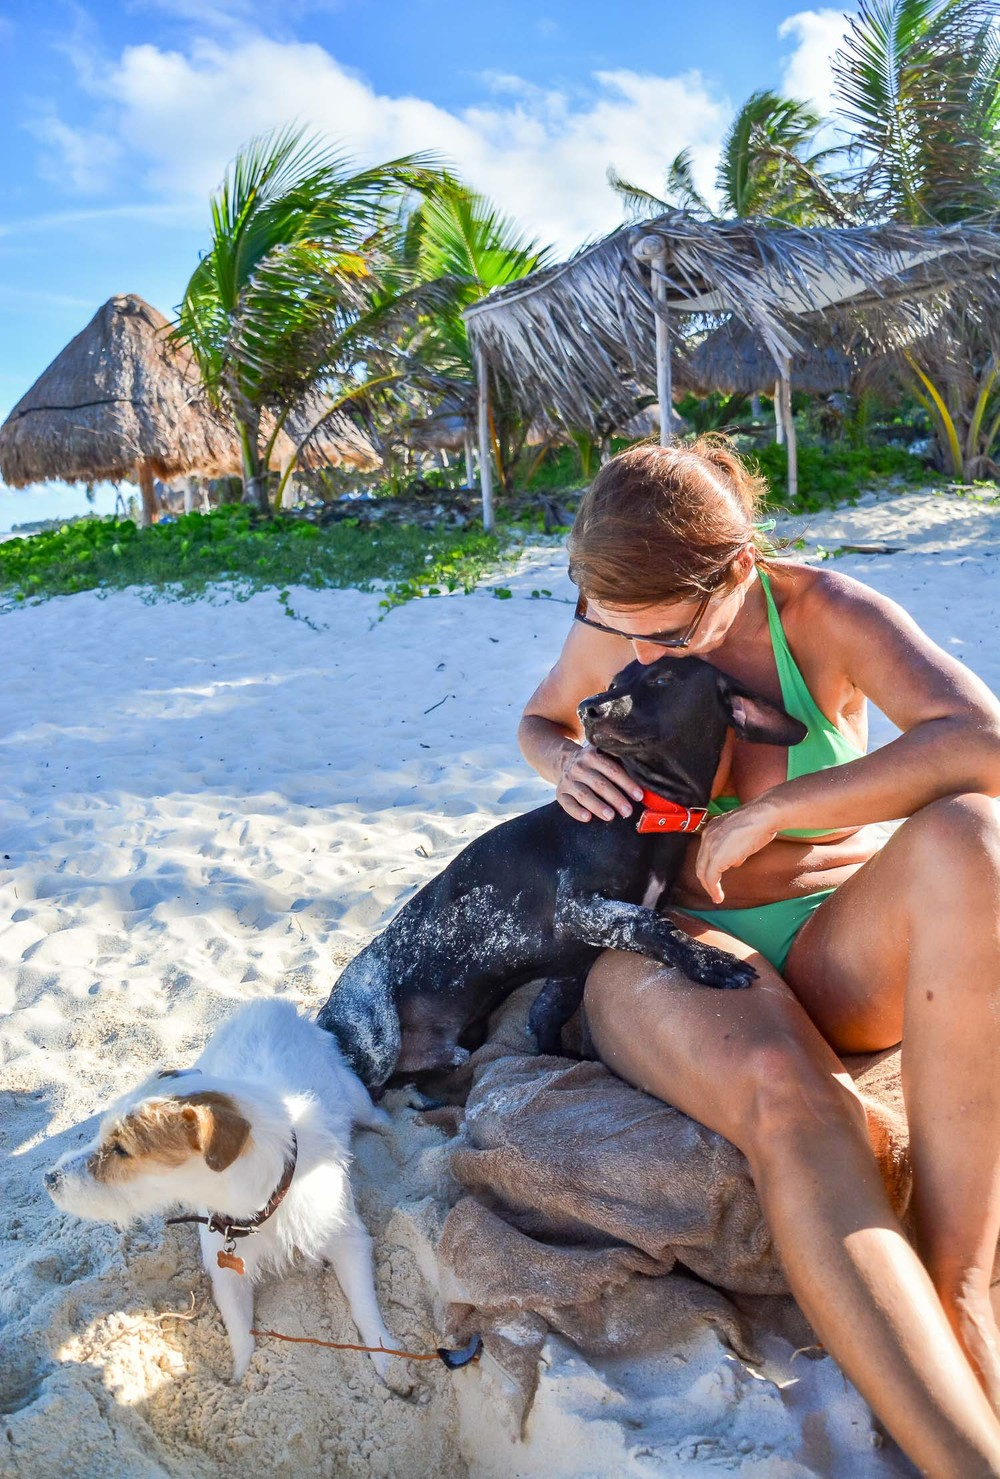 Pippen, Berto and Ariane - Tulum, Mexico